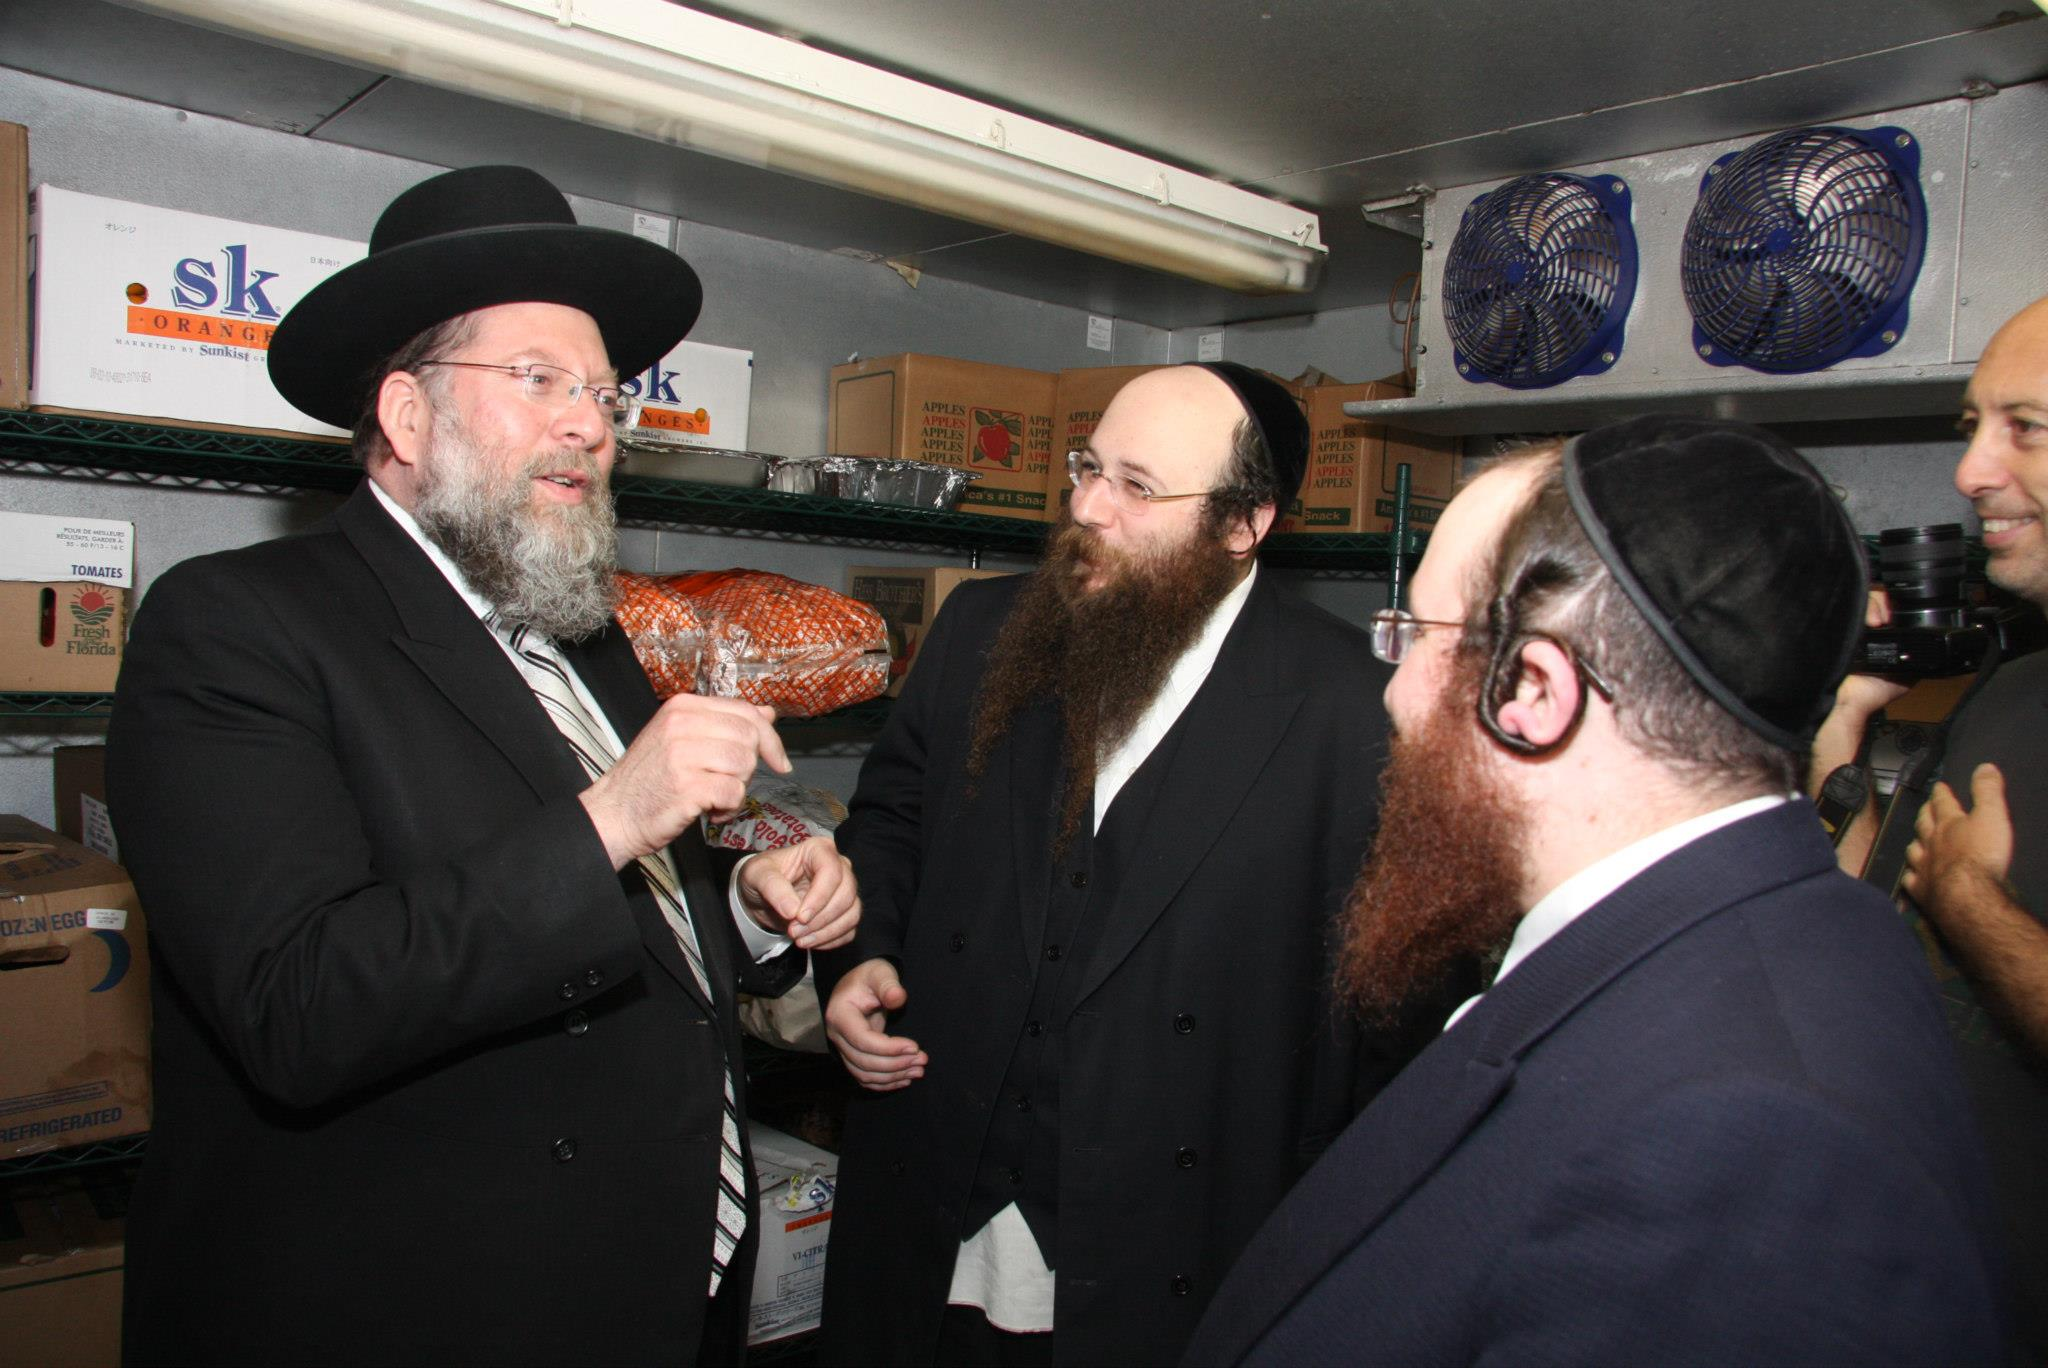 Masbia_Supporter__Rabbi_Moshe_Tuvia_Lieff_of_Agudath_Israel_Bais_Binyamin_Visiting_Masbia_of_Flatbush2.jpg